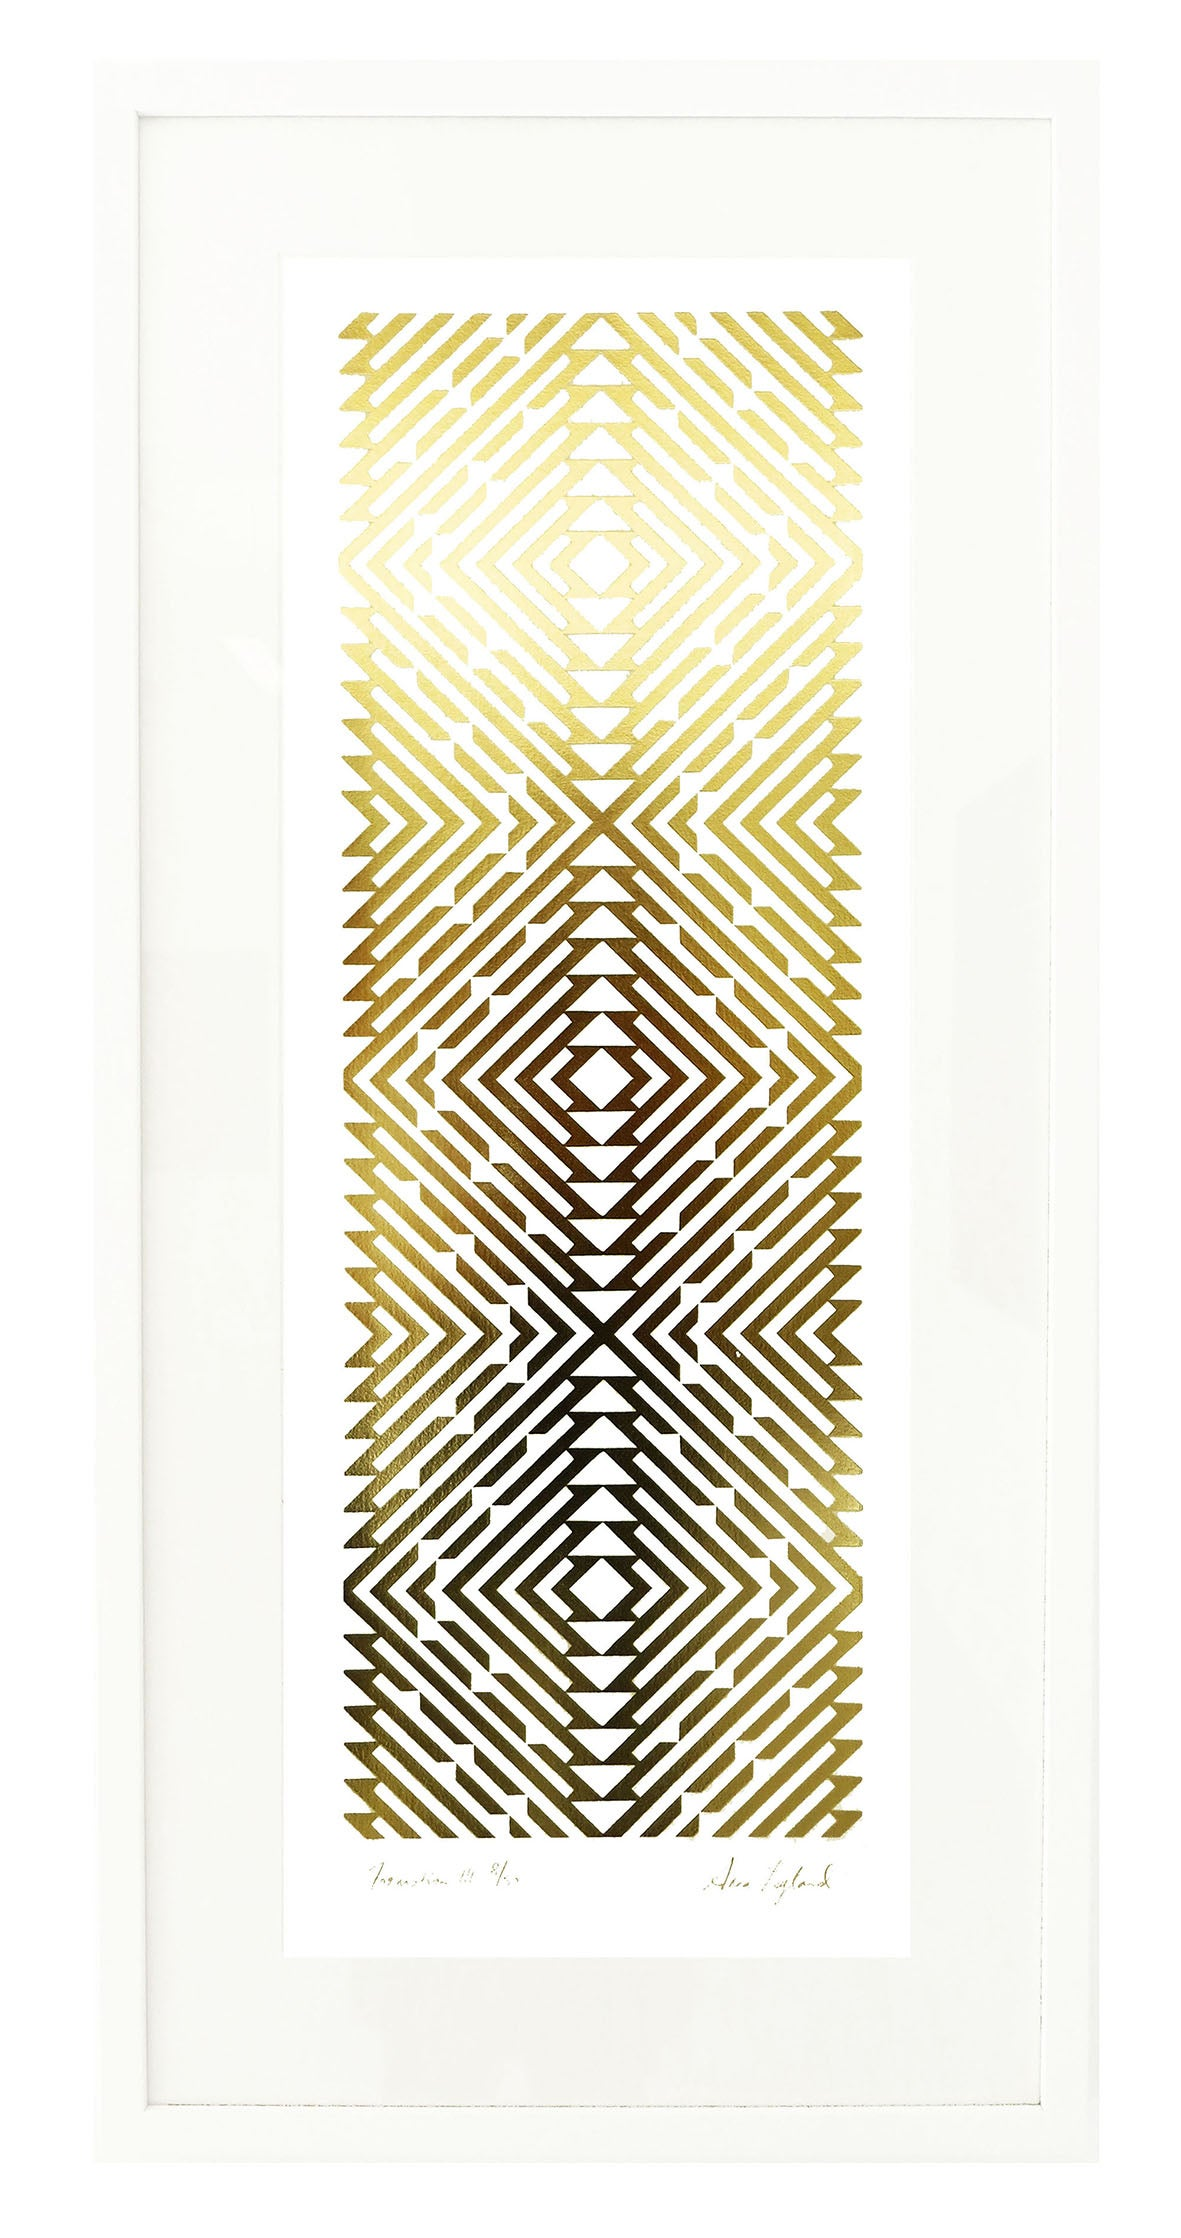 Image of 'Formation III' Limited Edition Gold Foil Screenprint